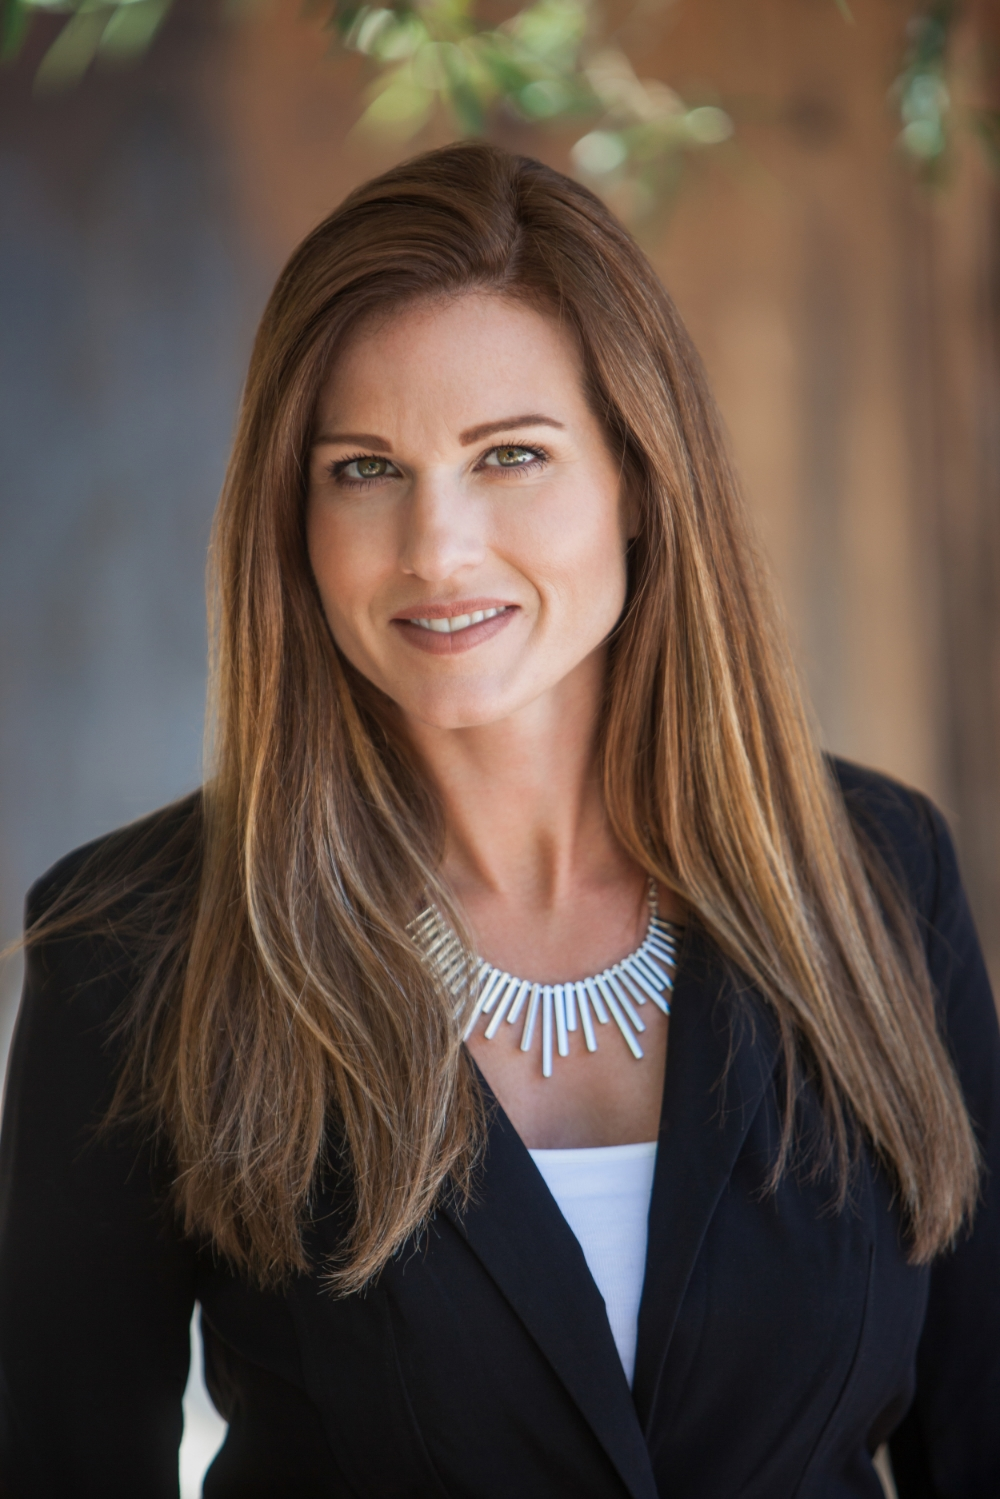 An outdoor, natural light professional Corporate headshot of a business woman in a dark suit. ©Photo by Val Westover Photography - Orange County California & Salt Lake City Utah. All Rights Reserved.